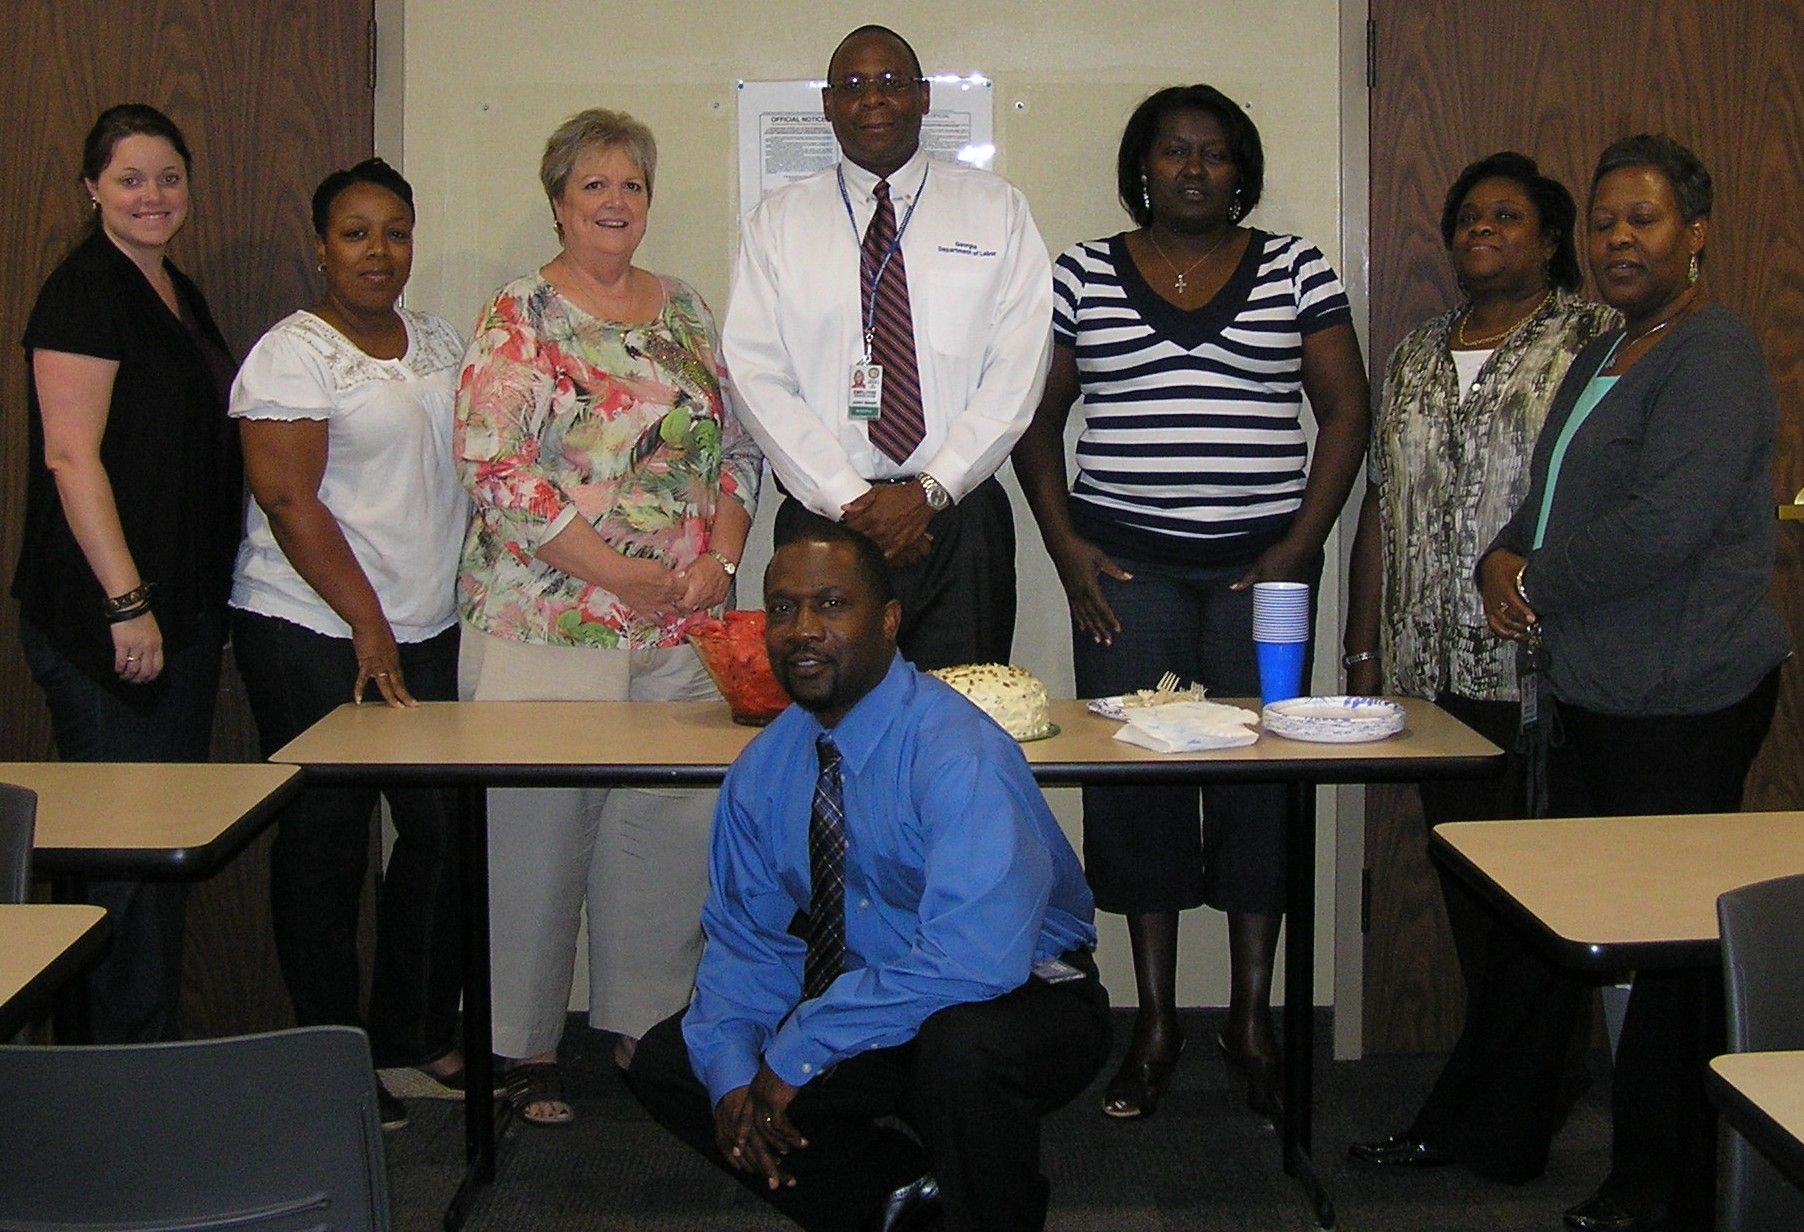 Augusta cdf learning team graduates with images